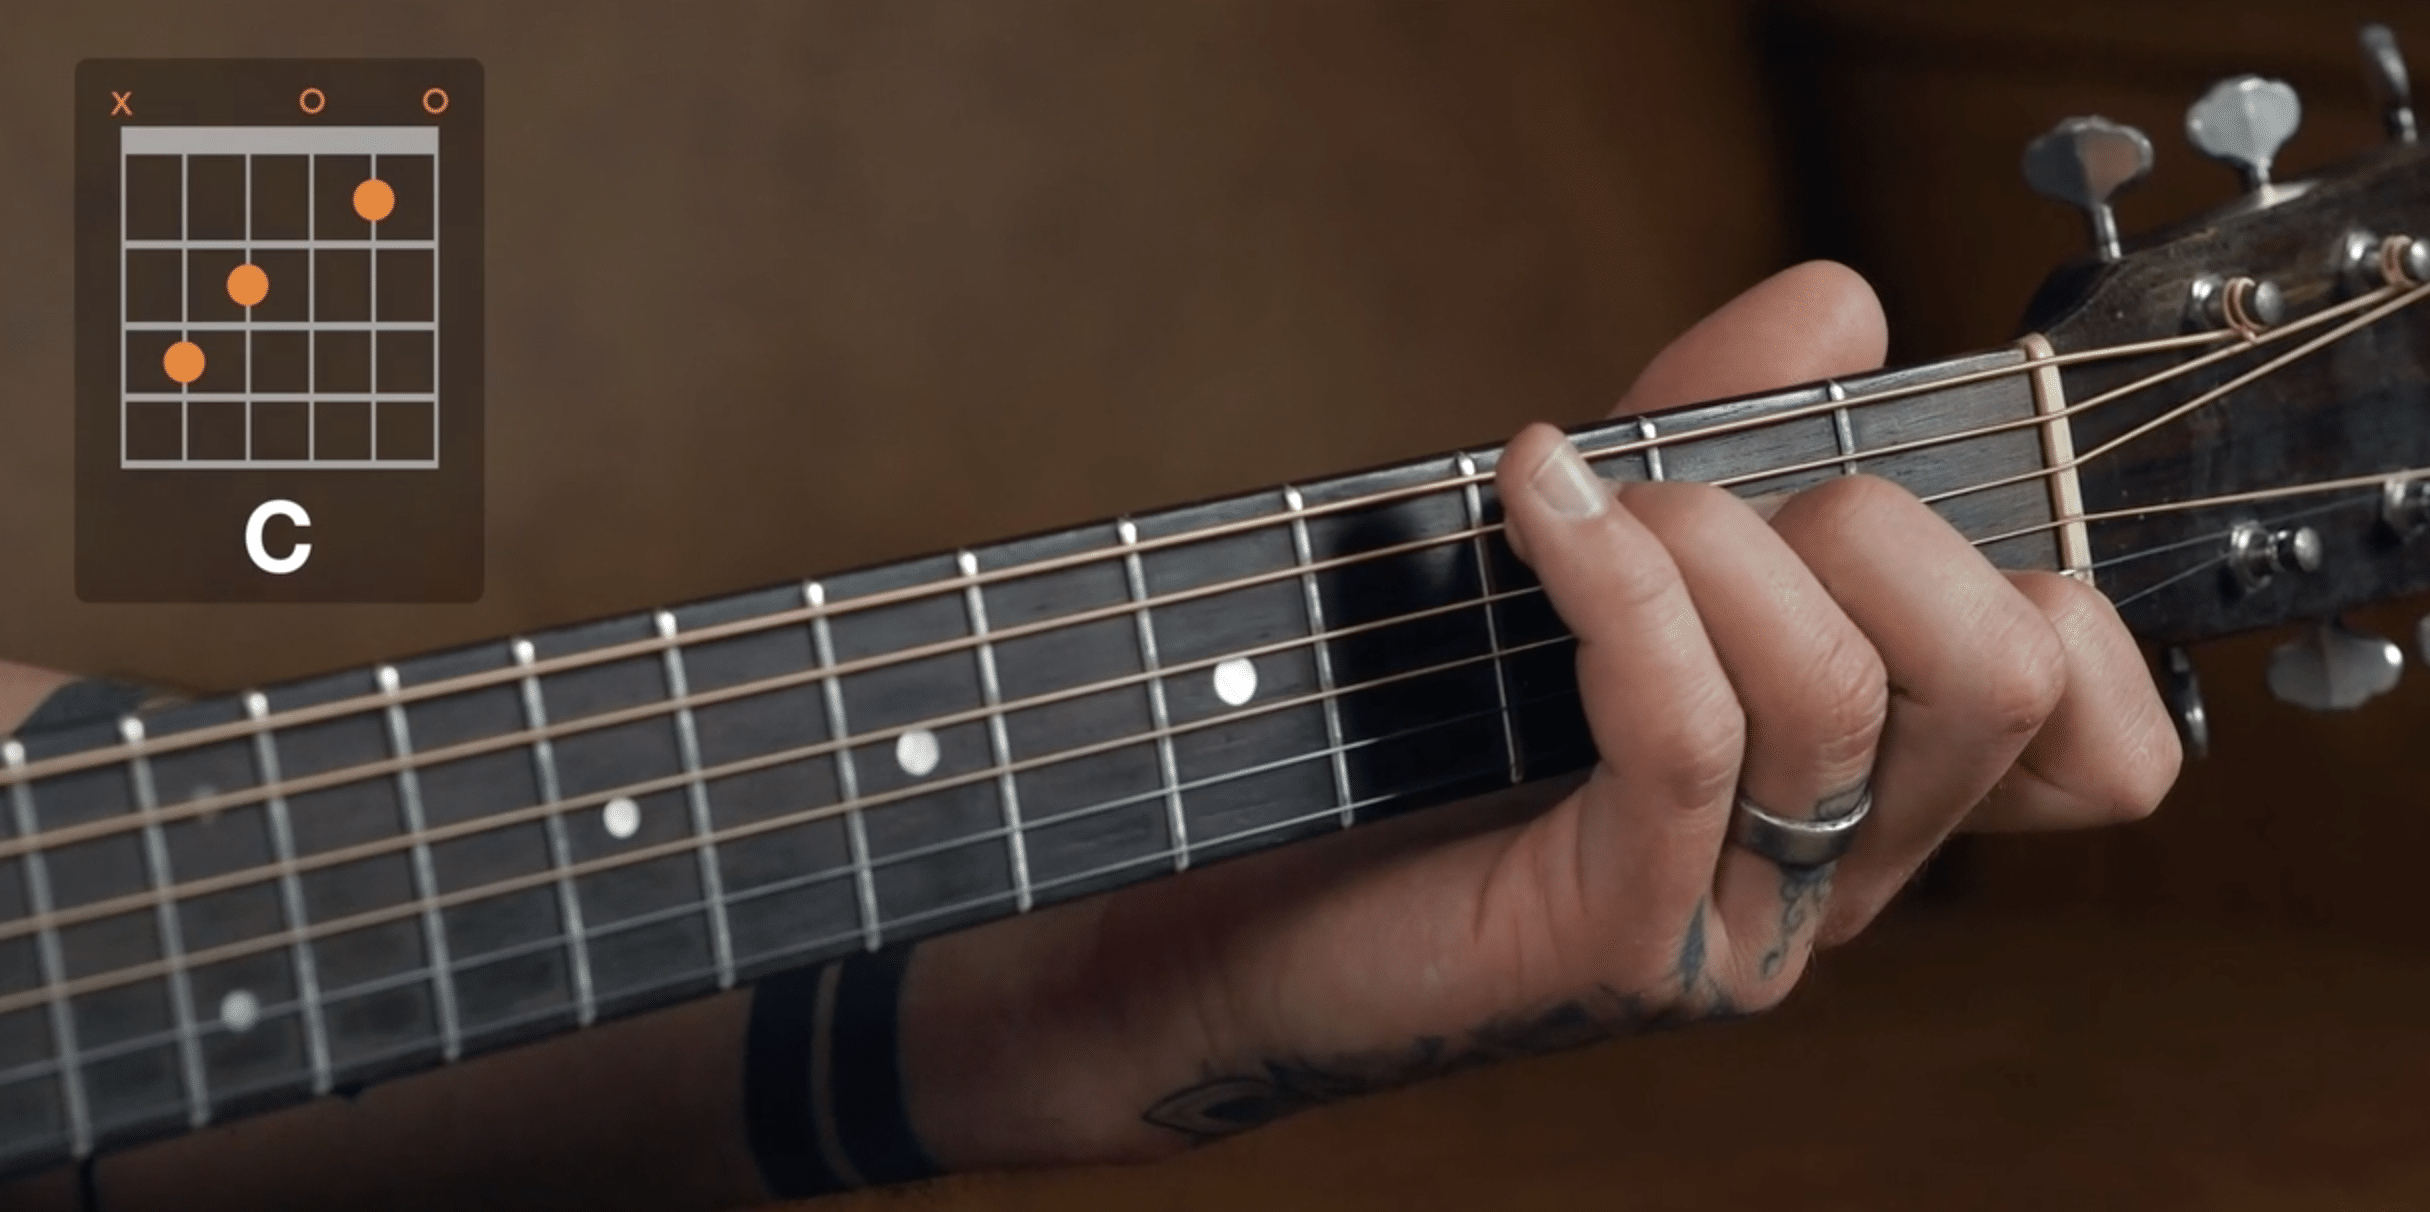 Learn C and C Chord Finger Position   Learn to Play Guitar ...